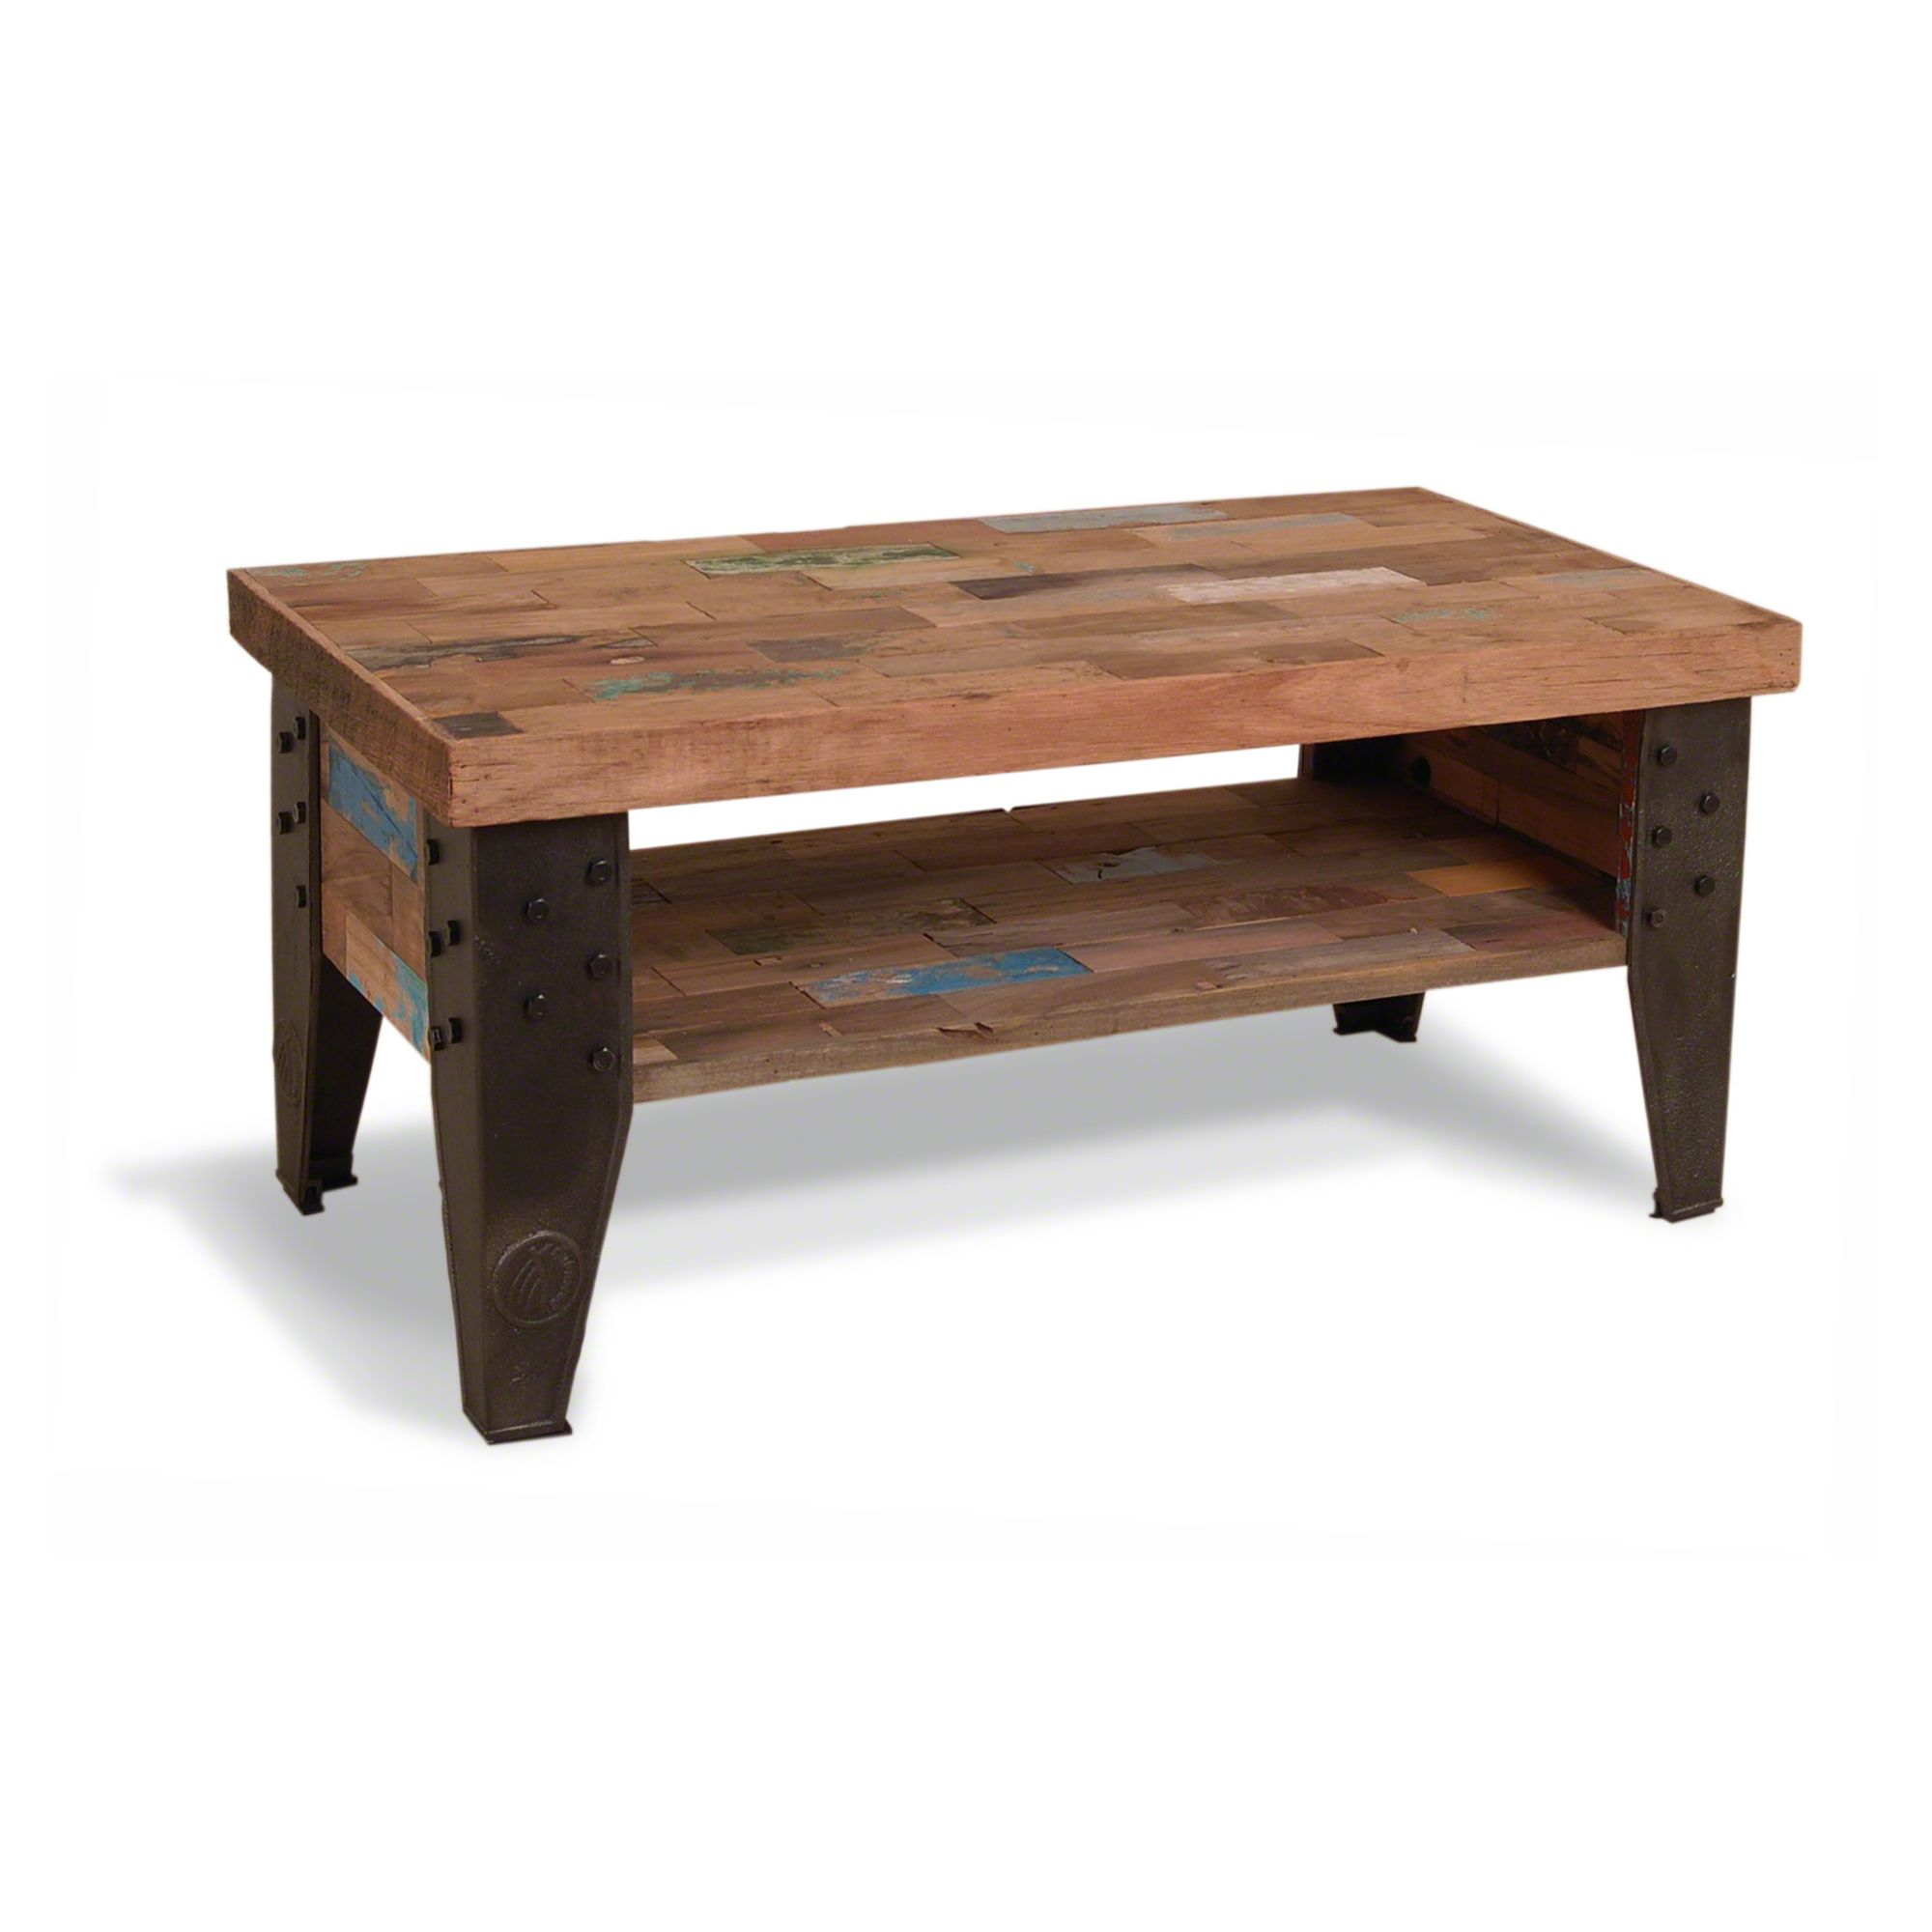 Oceans Apart Recycled Boat TV Dresser / Coffee Table at Tescos Direct